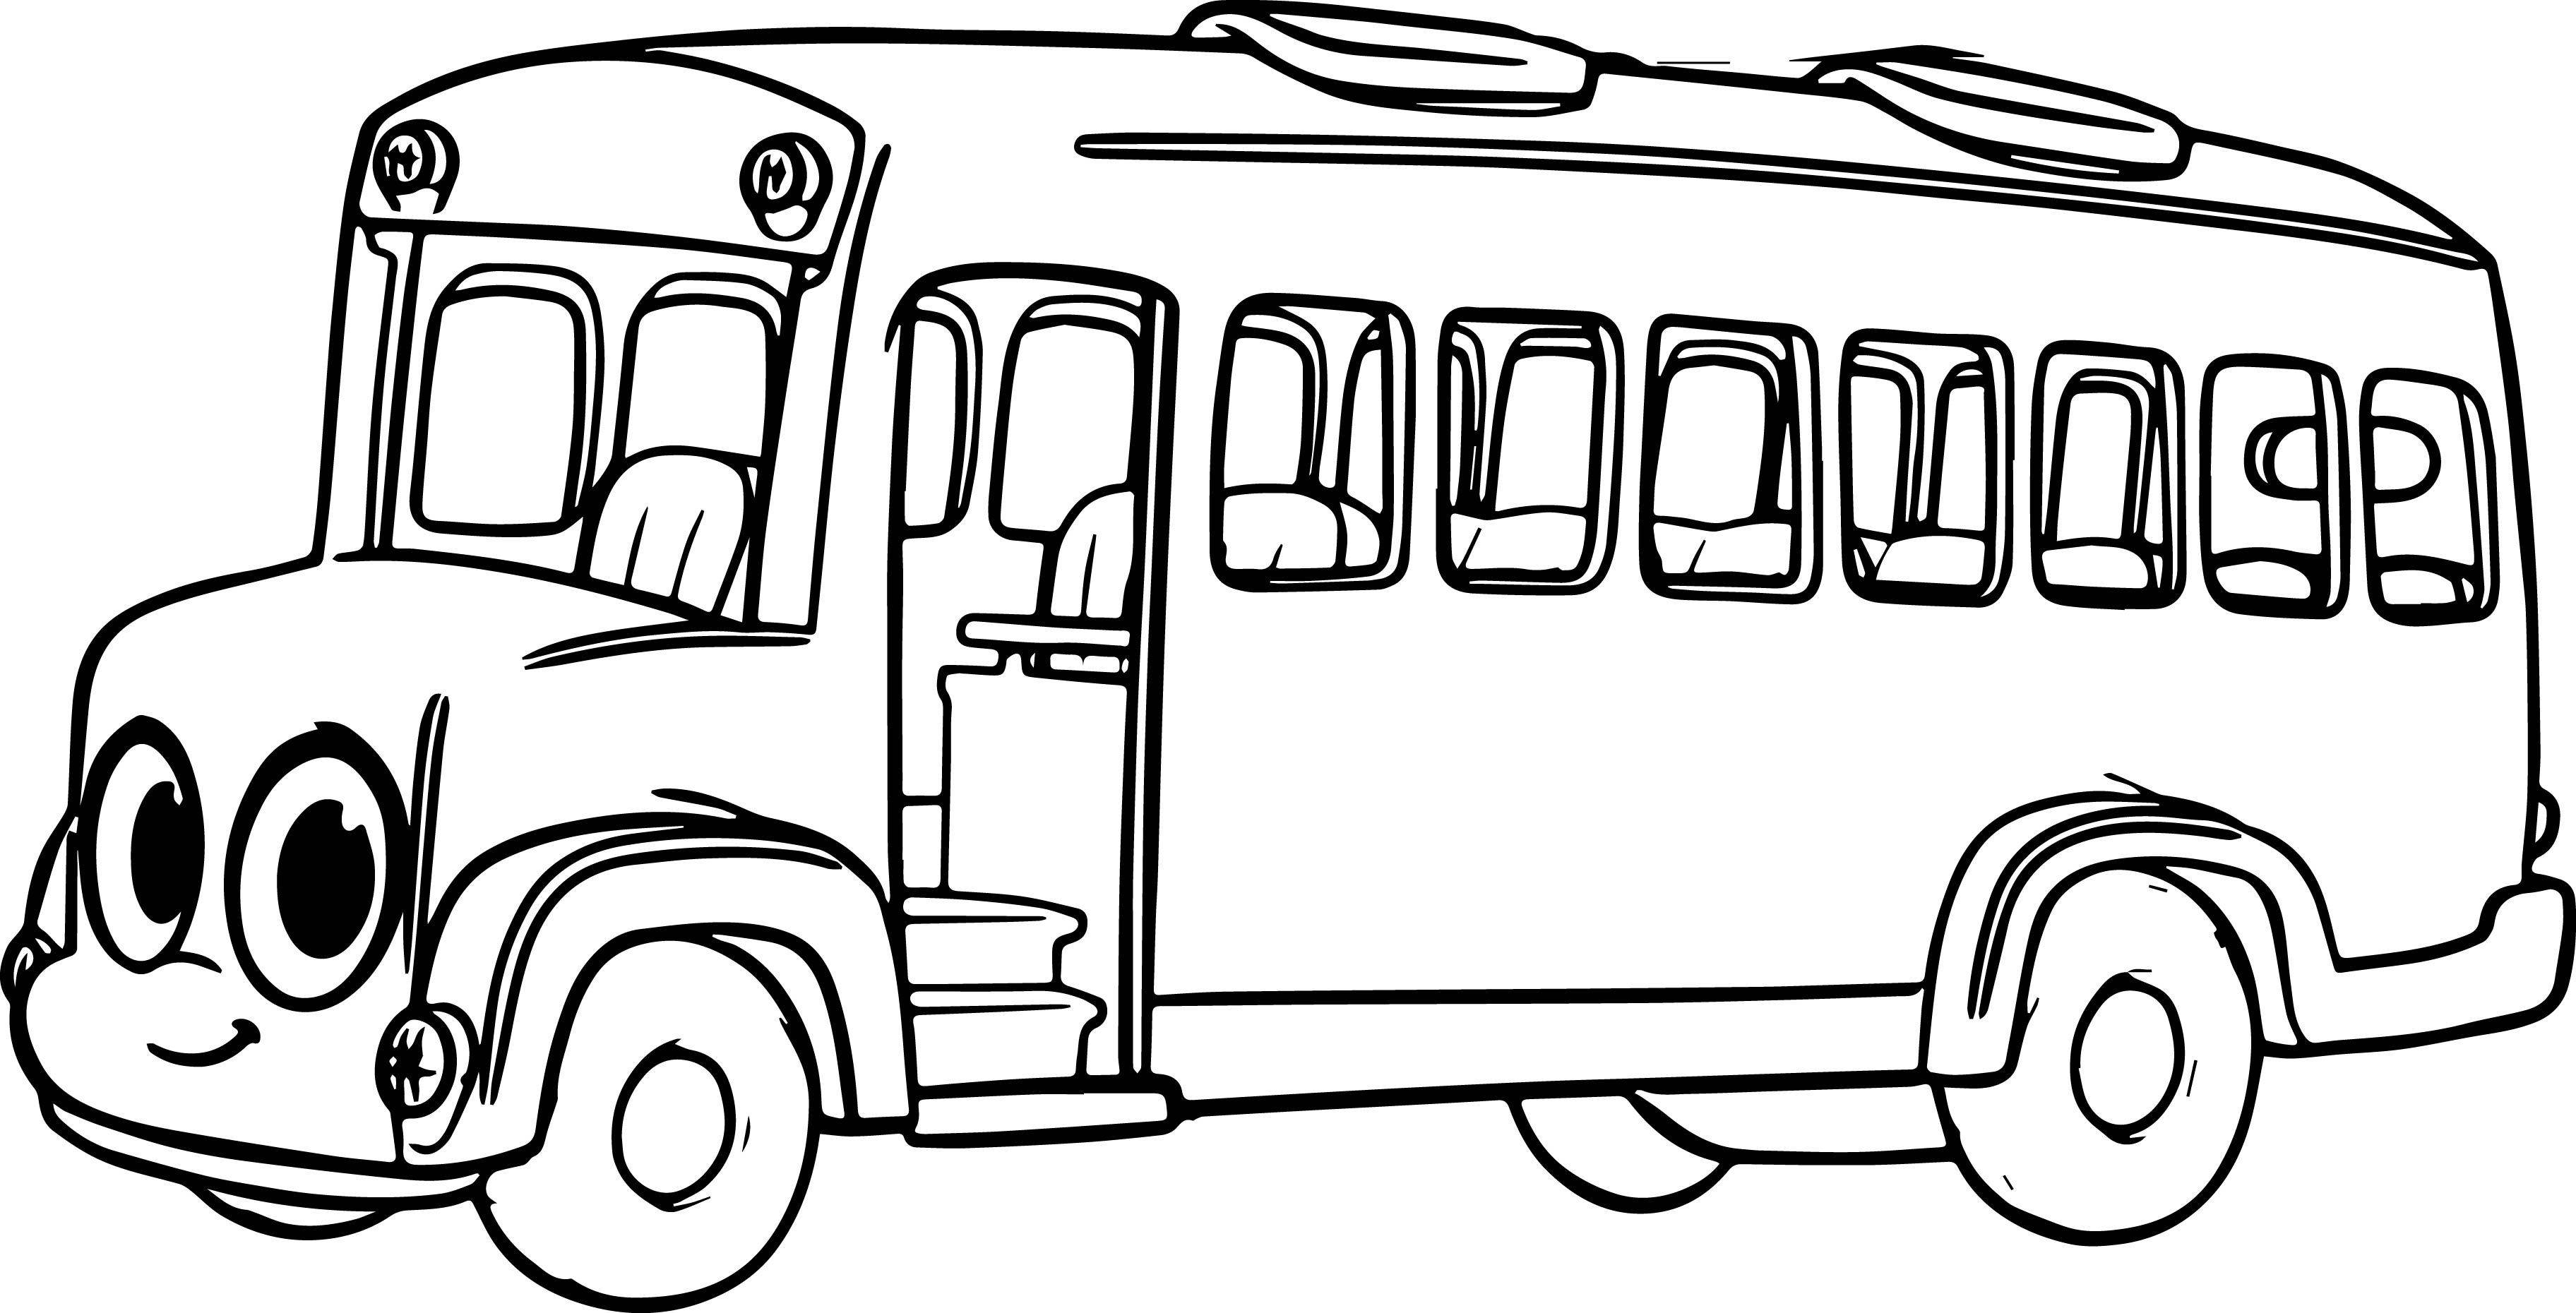 Line Drawing School : School bus drawing at getdrawings free for personal